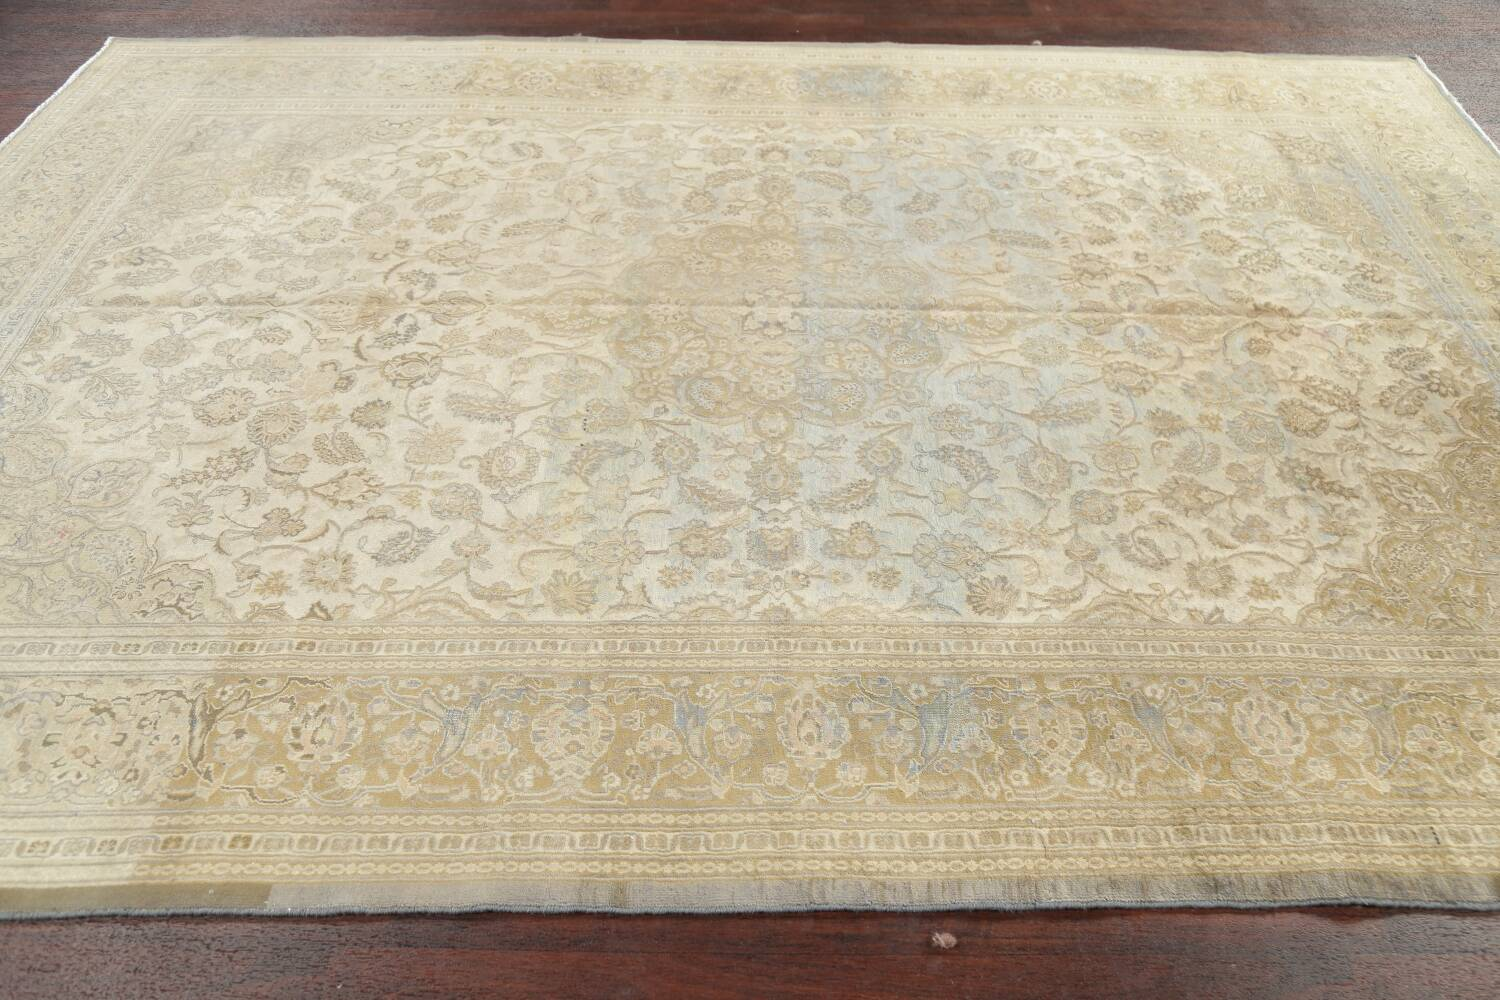 Muted Distressed Antique Kashan Persian Area Rug 7x10 image 19